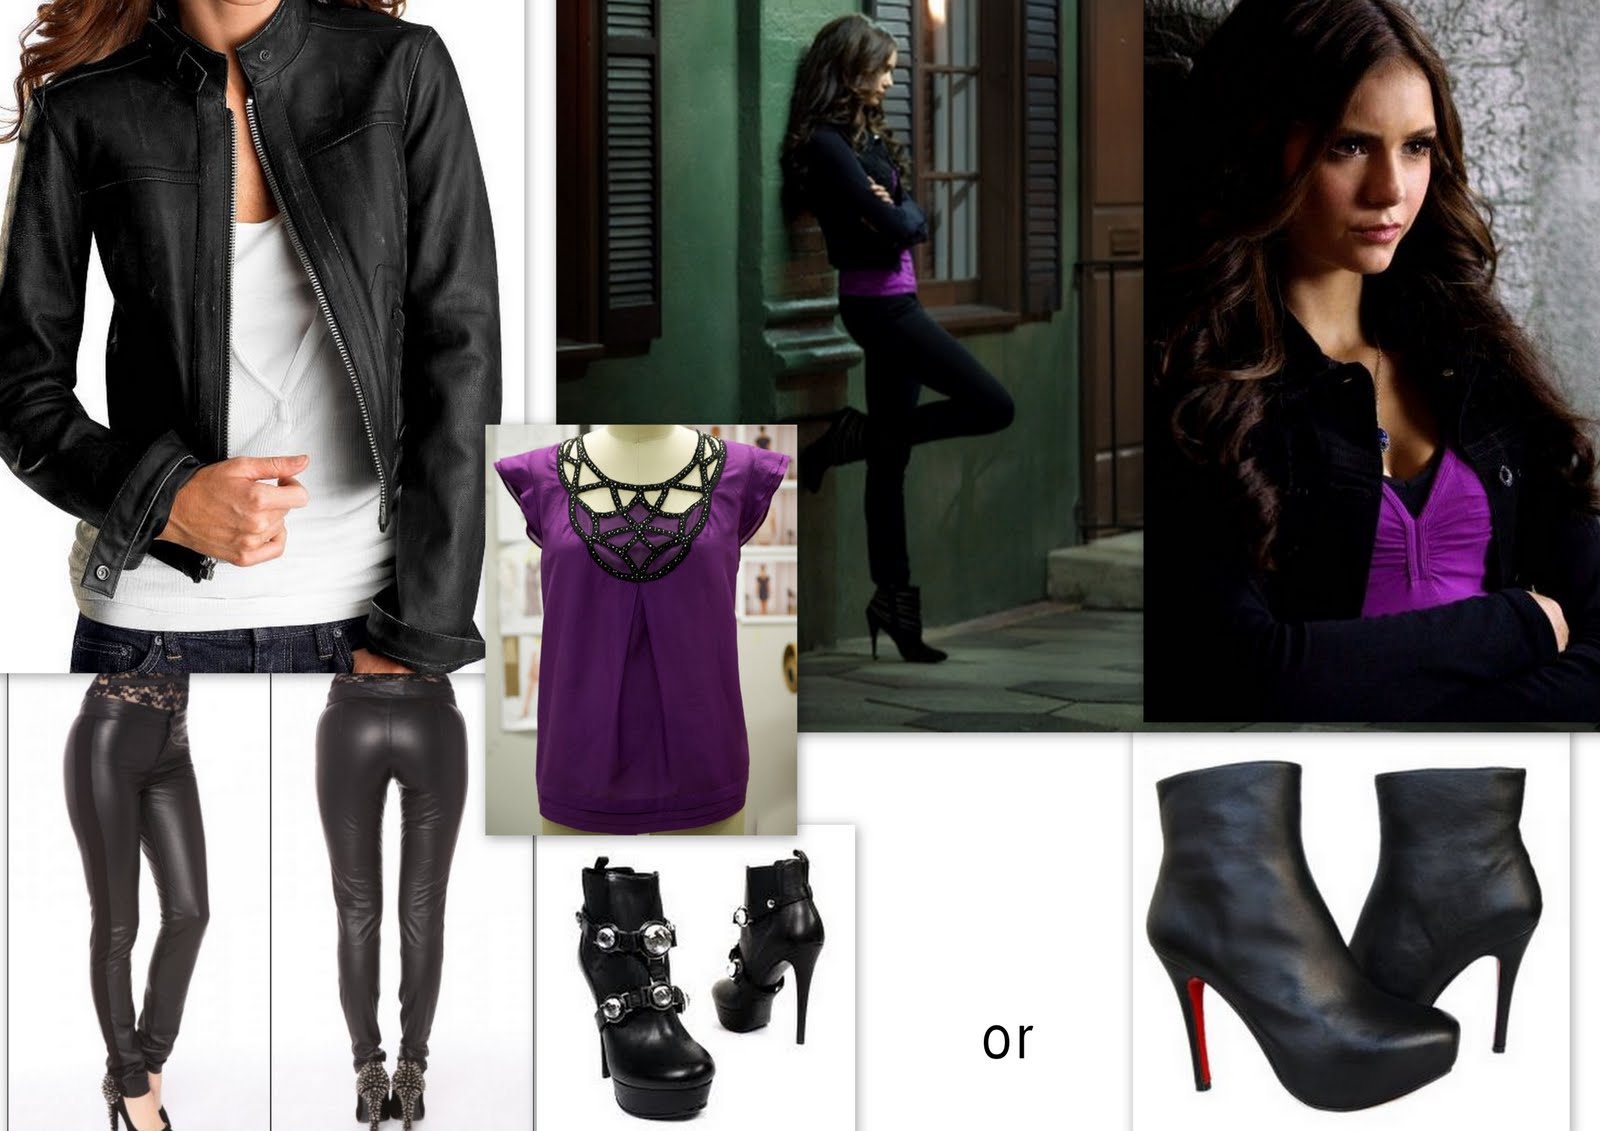 Style Meeh Dress Up Like Katherine Pierce Tvd